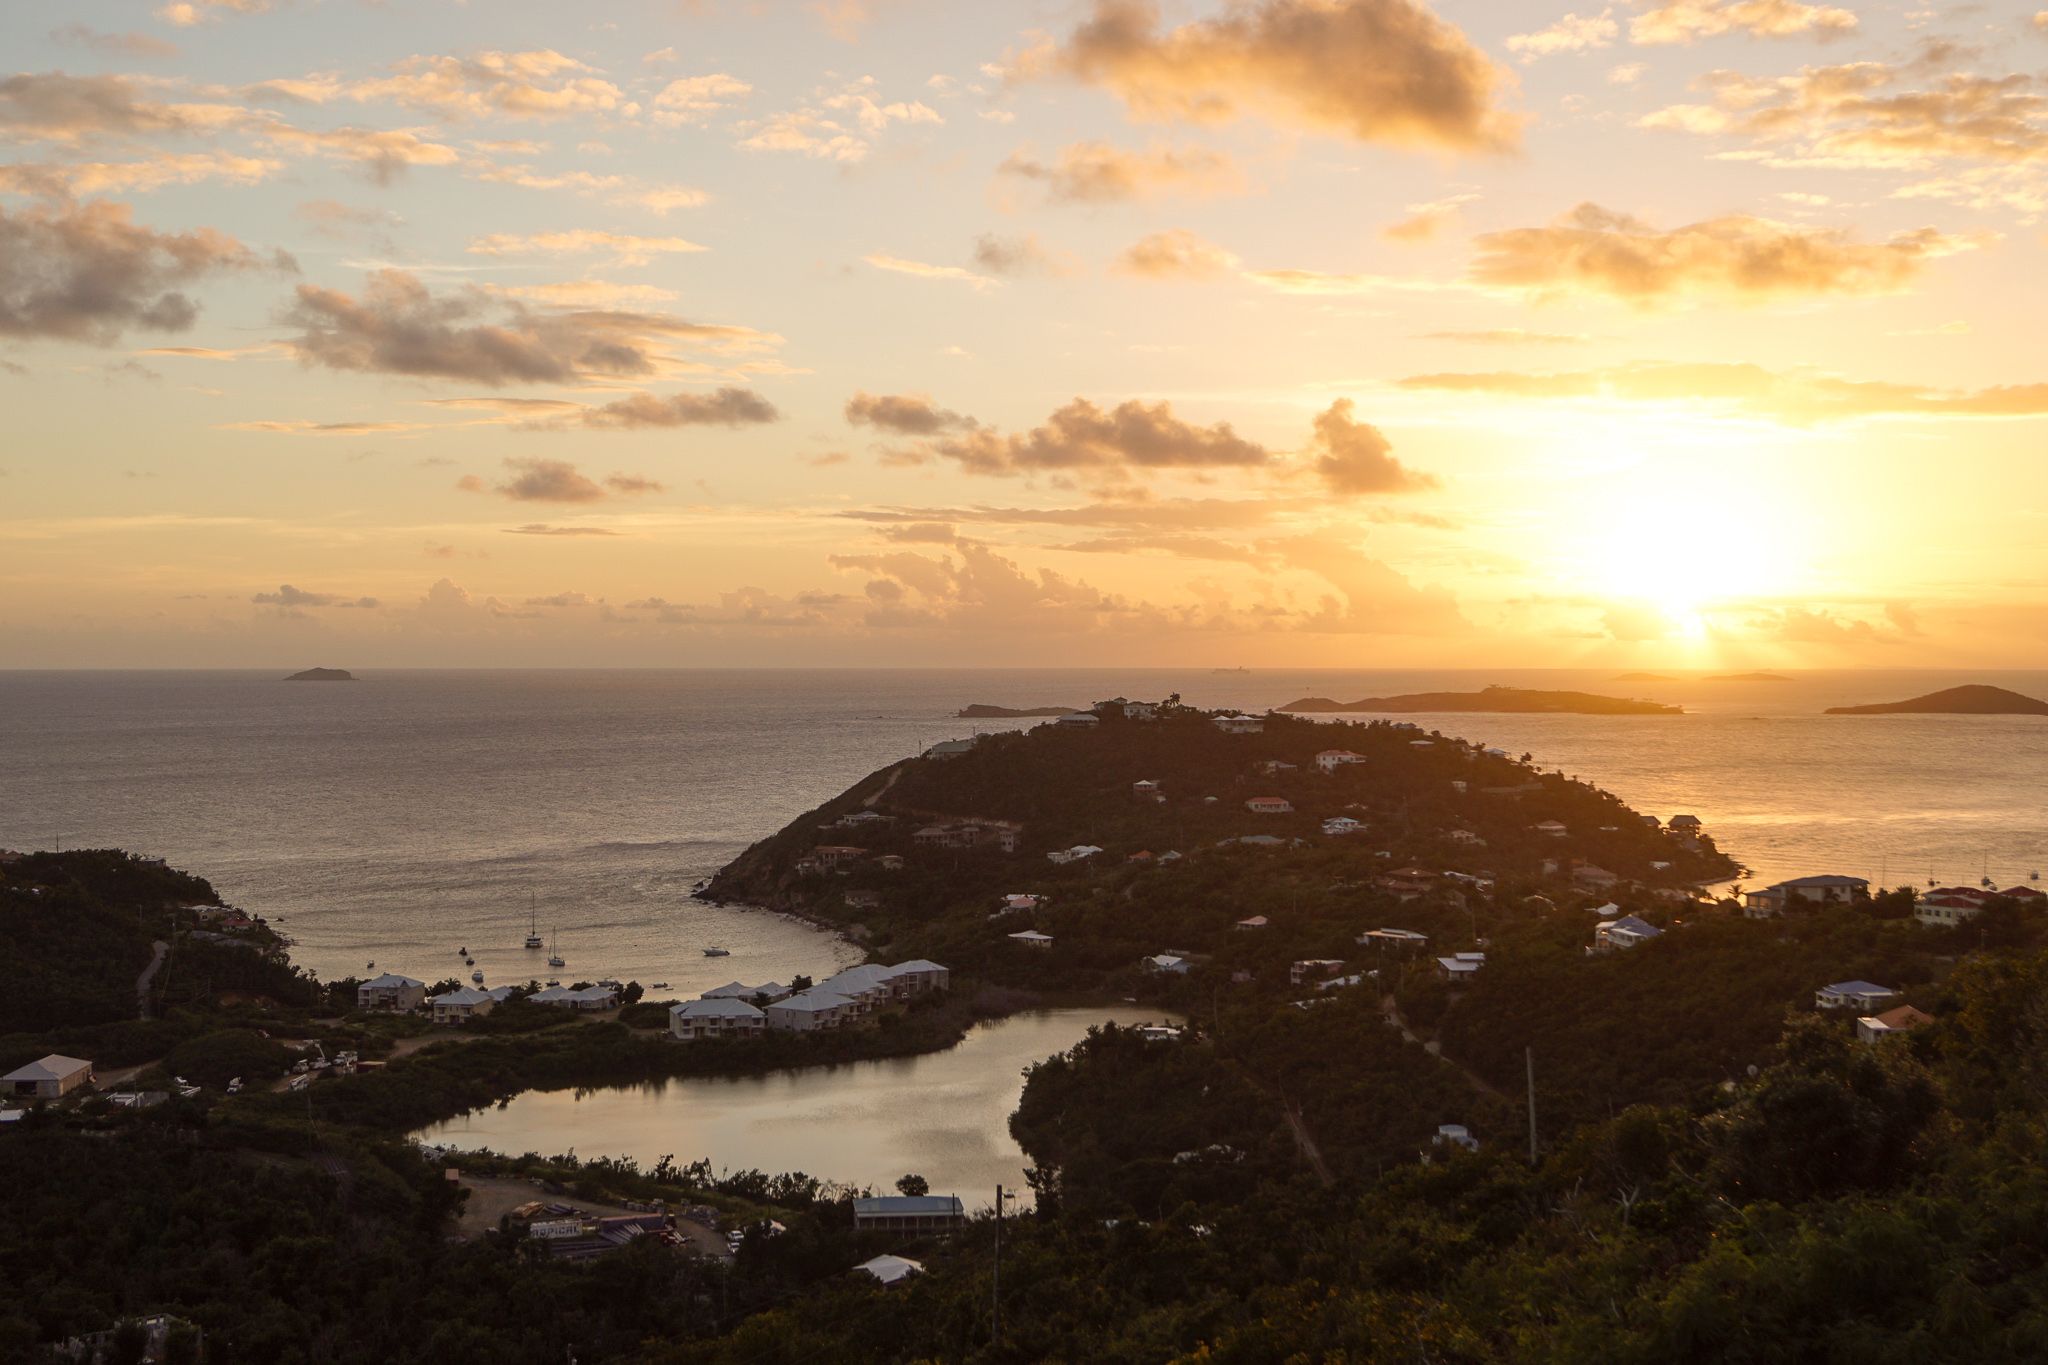 Sunset over Chocolate Hole in St. John